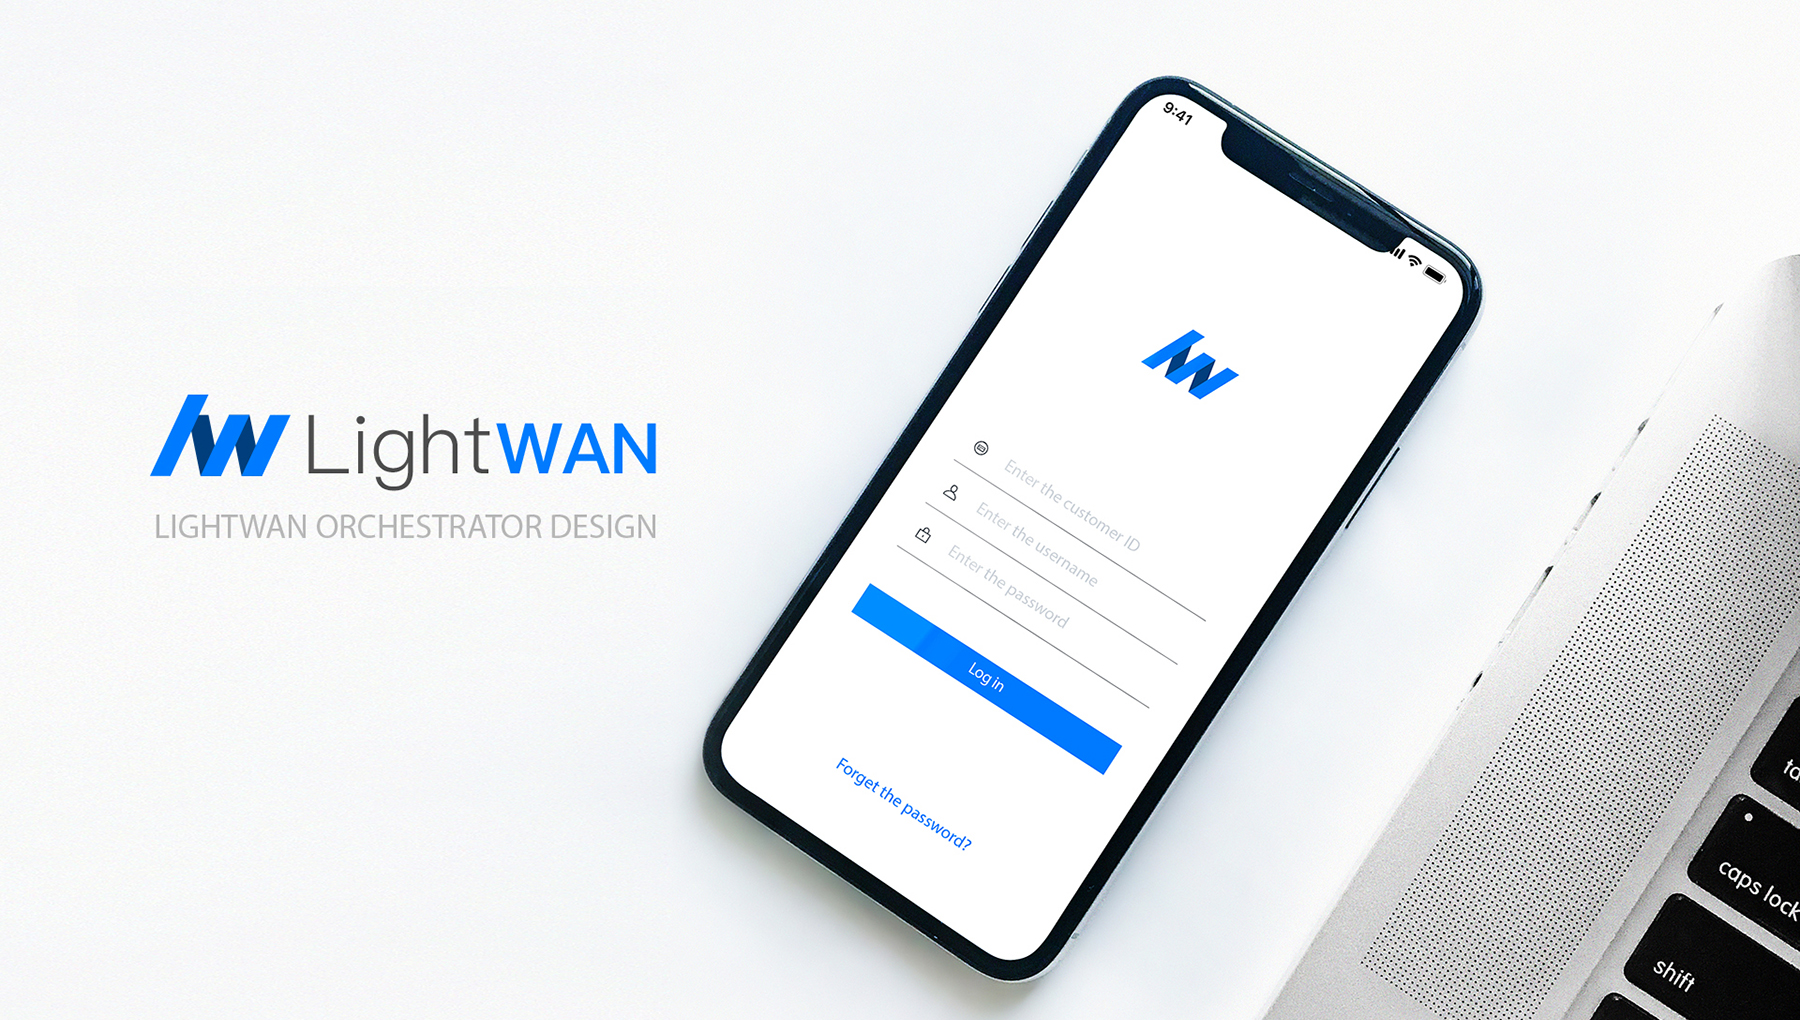 LightWAN login